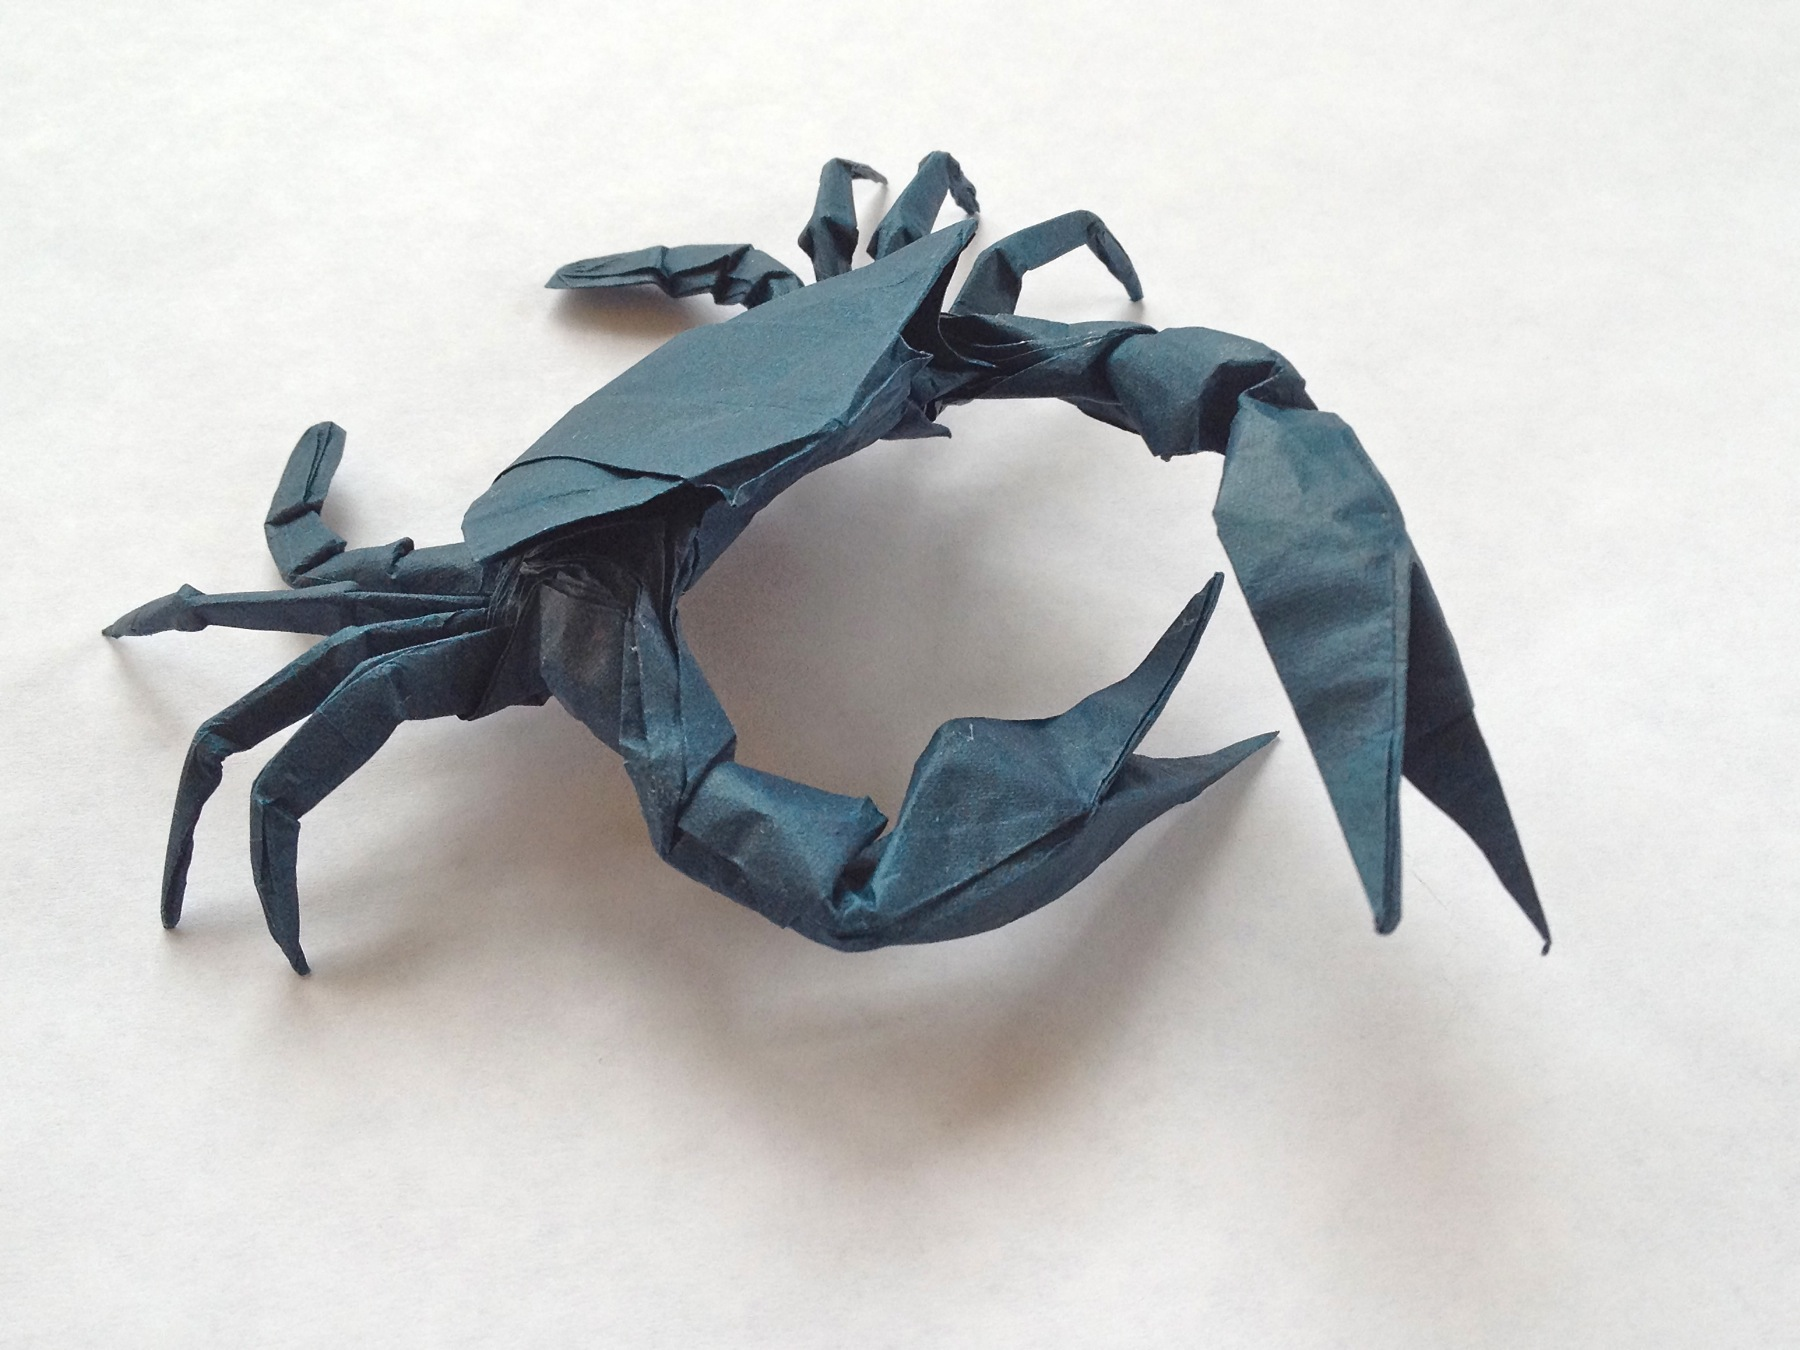 How to make Origami Crab | Easy Origami Crab Tutorial (2018) - YouTube | 1350x1800